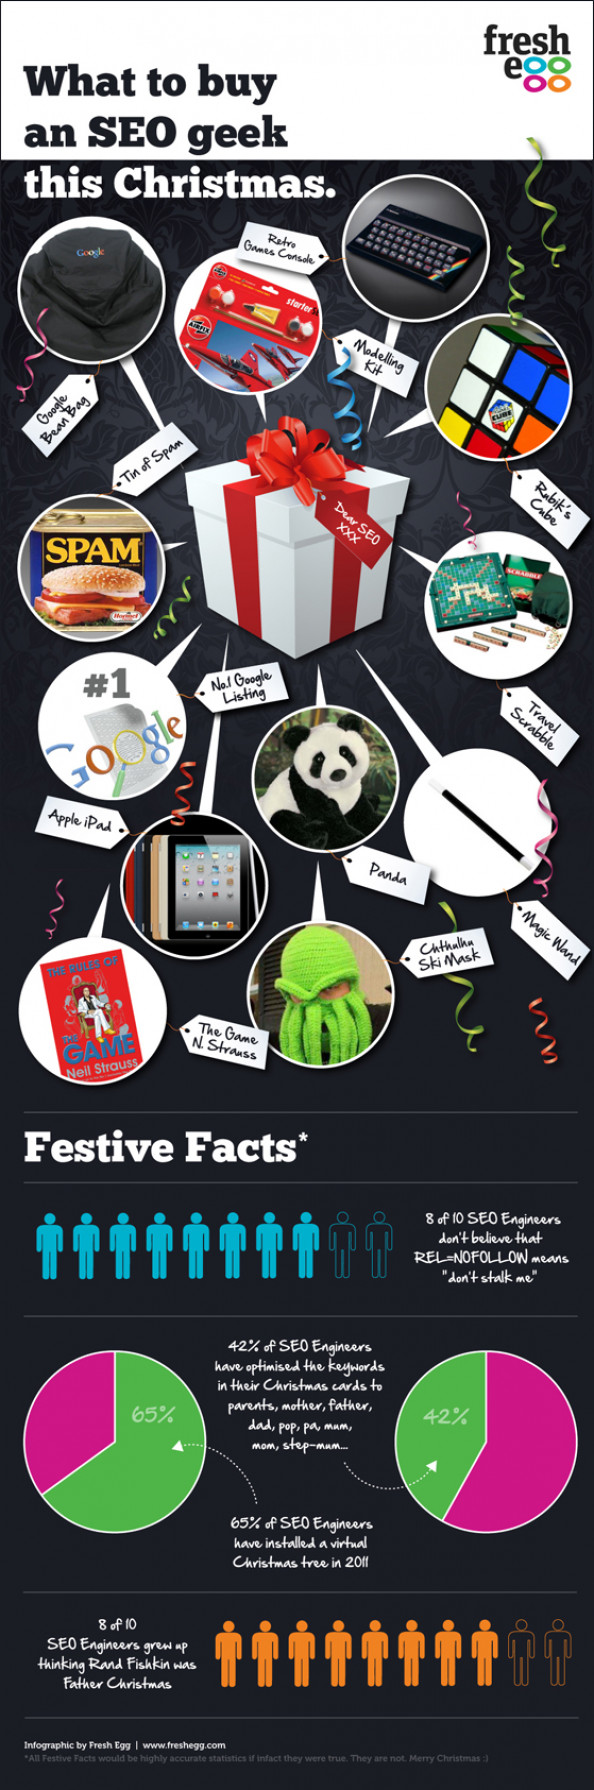 Festive Facts for SEO&#039;s - FUN! Infographic